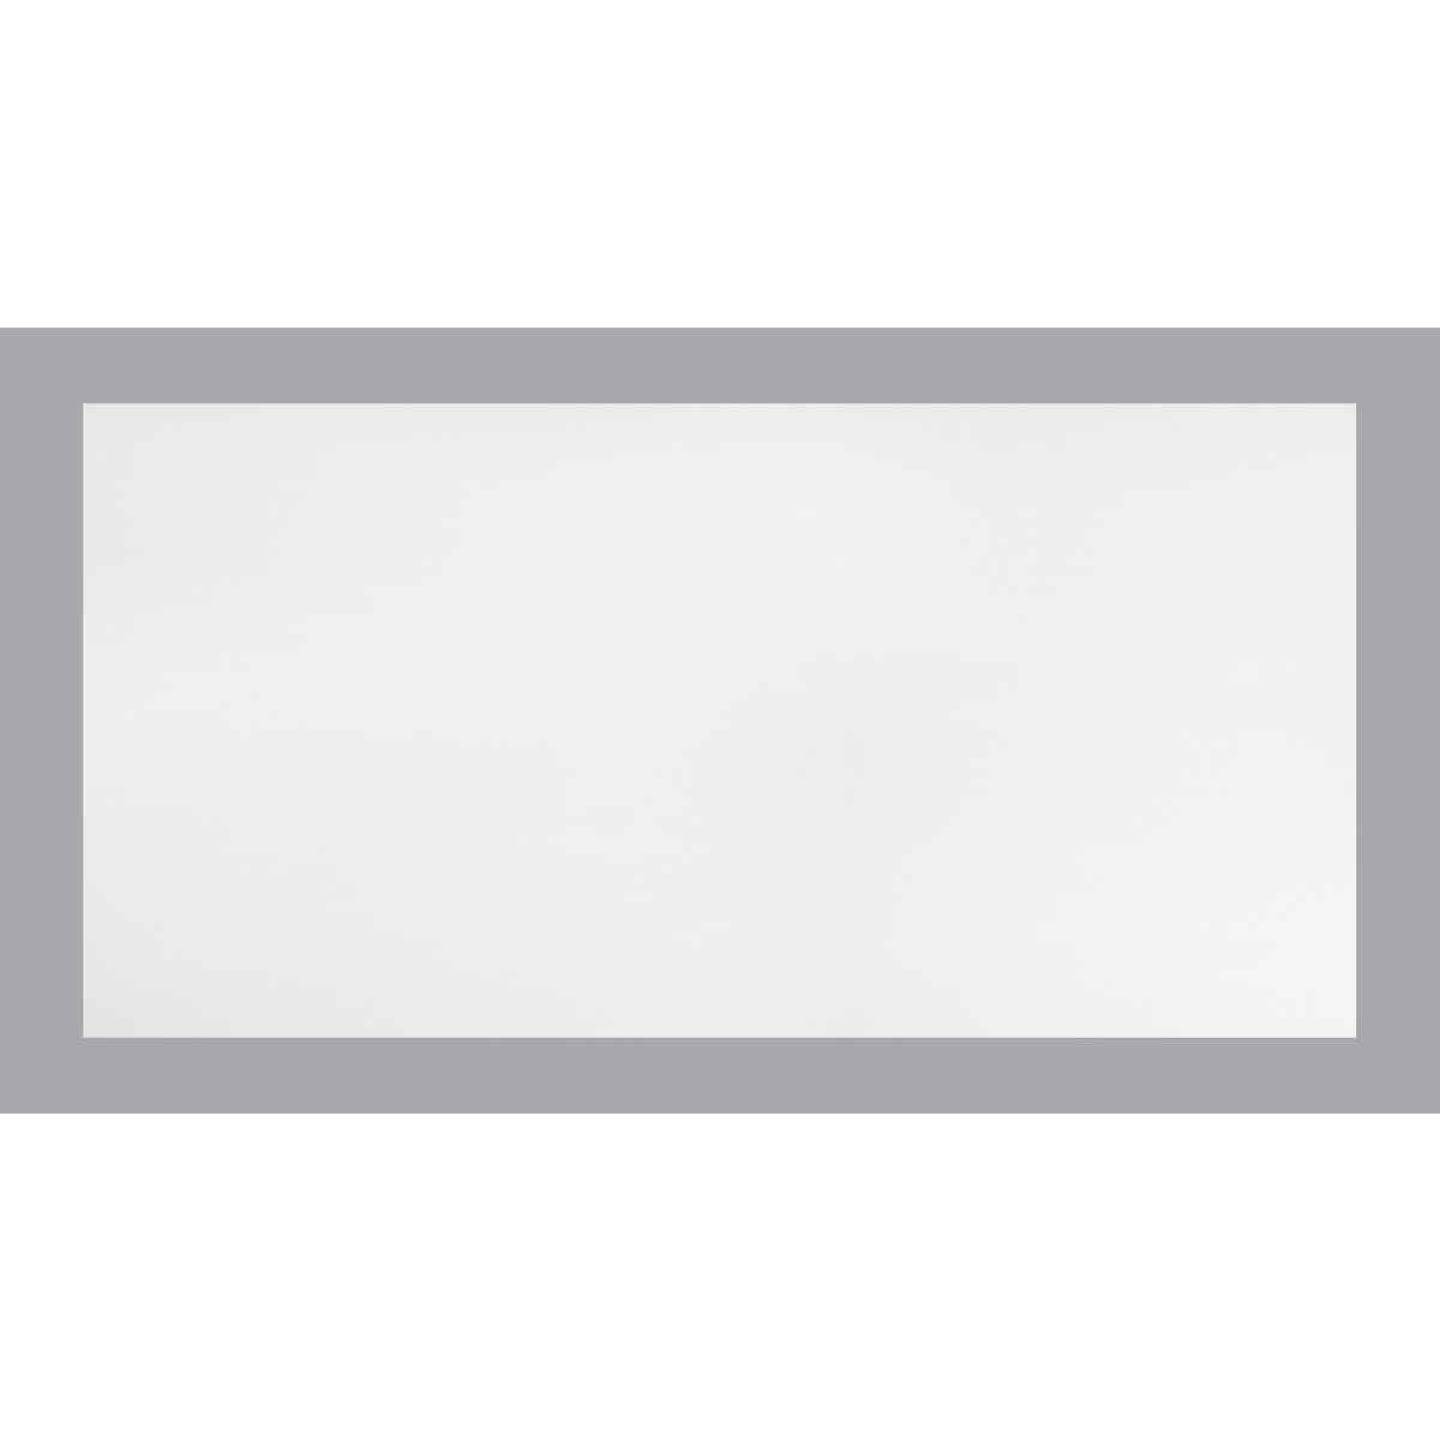 Parkland Performance SpectraTile Finale 2 Ft. x 4 Ft. White PVC Smooth Suspended Ceiling Tile Image 1